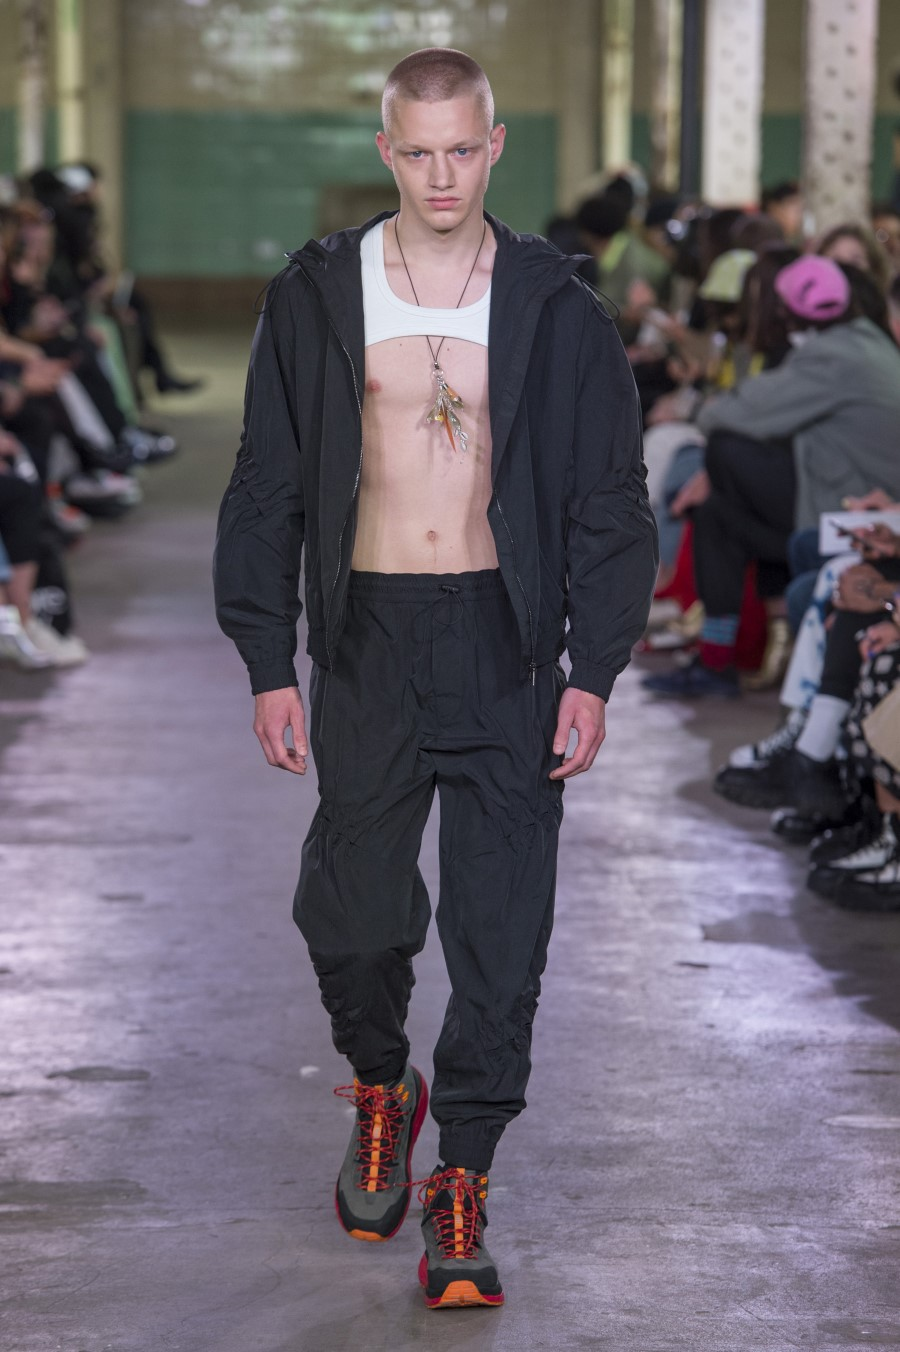 JordanLuca - Printemps-Été 2020 - London Fashion Week Men's